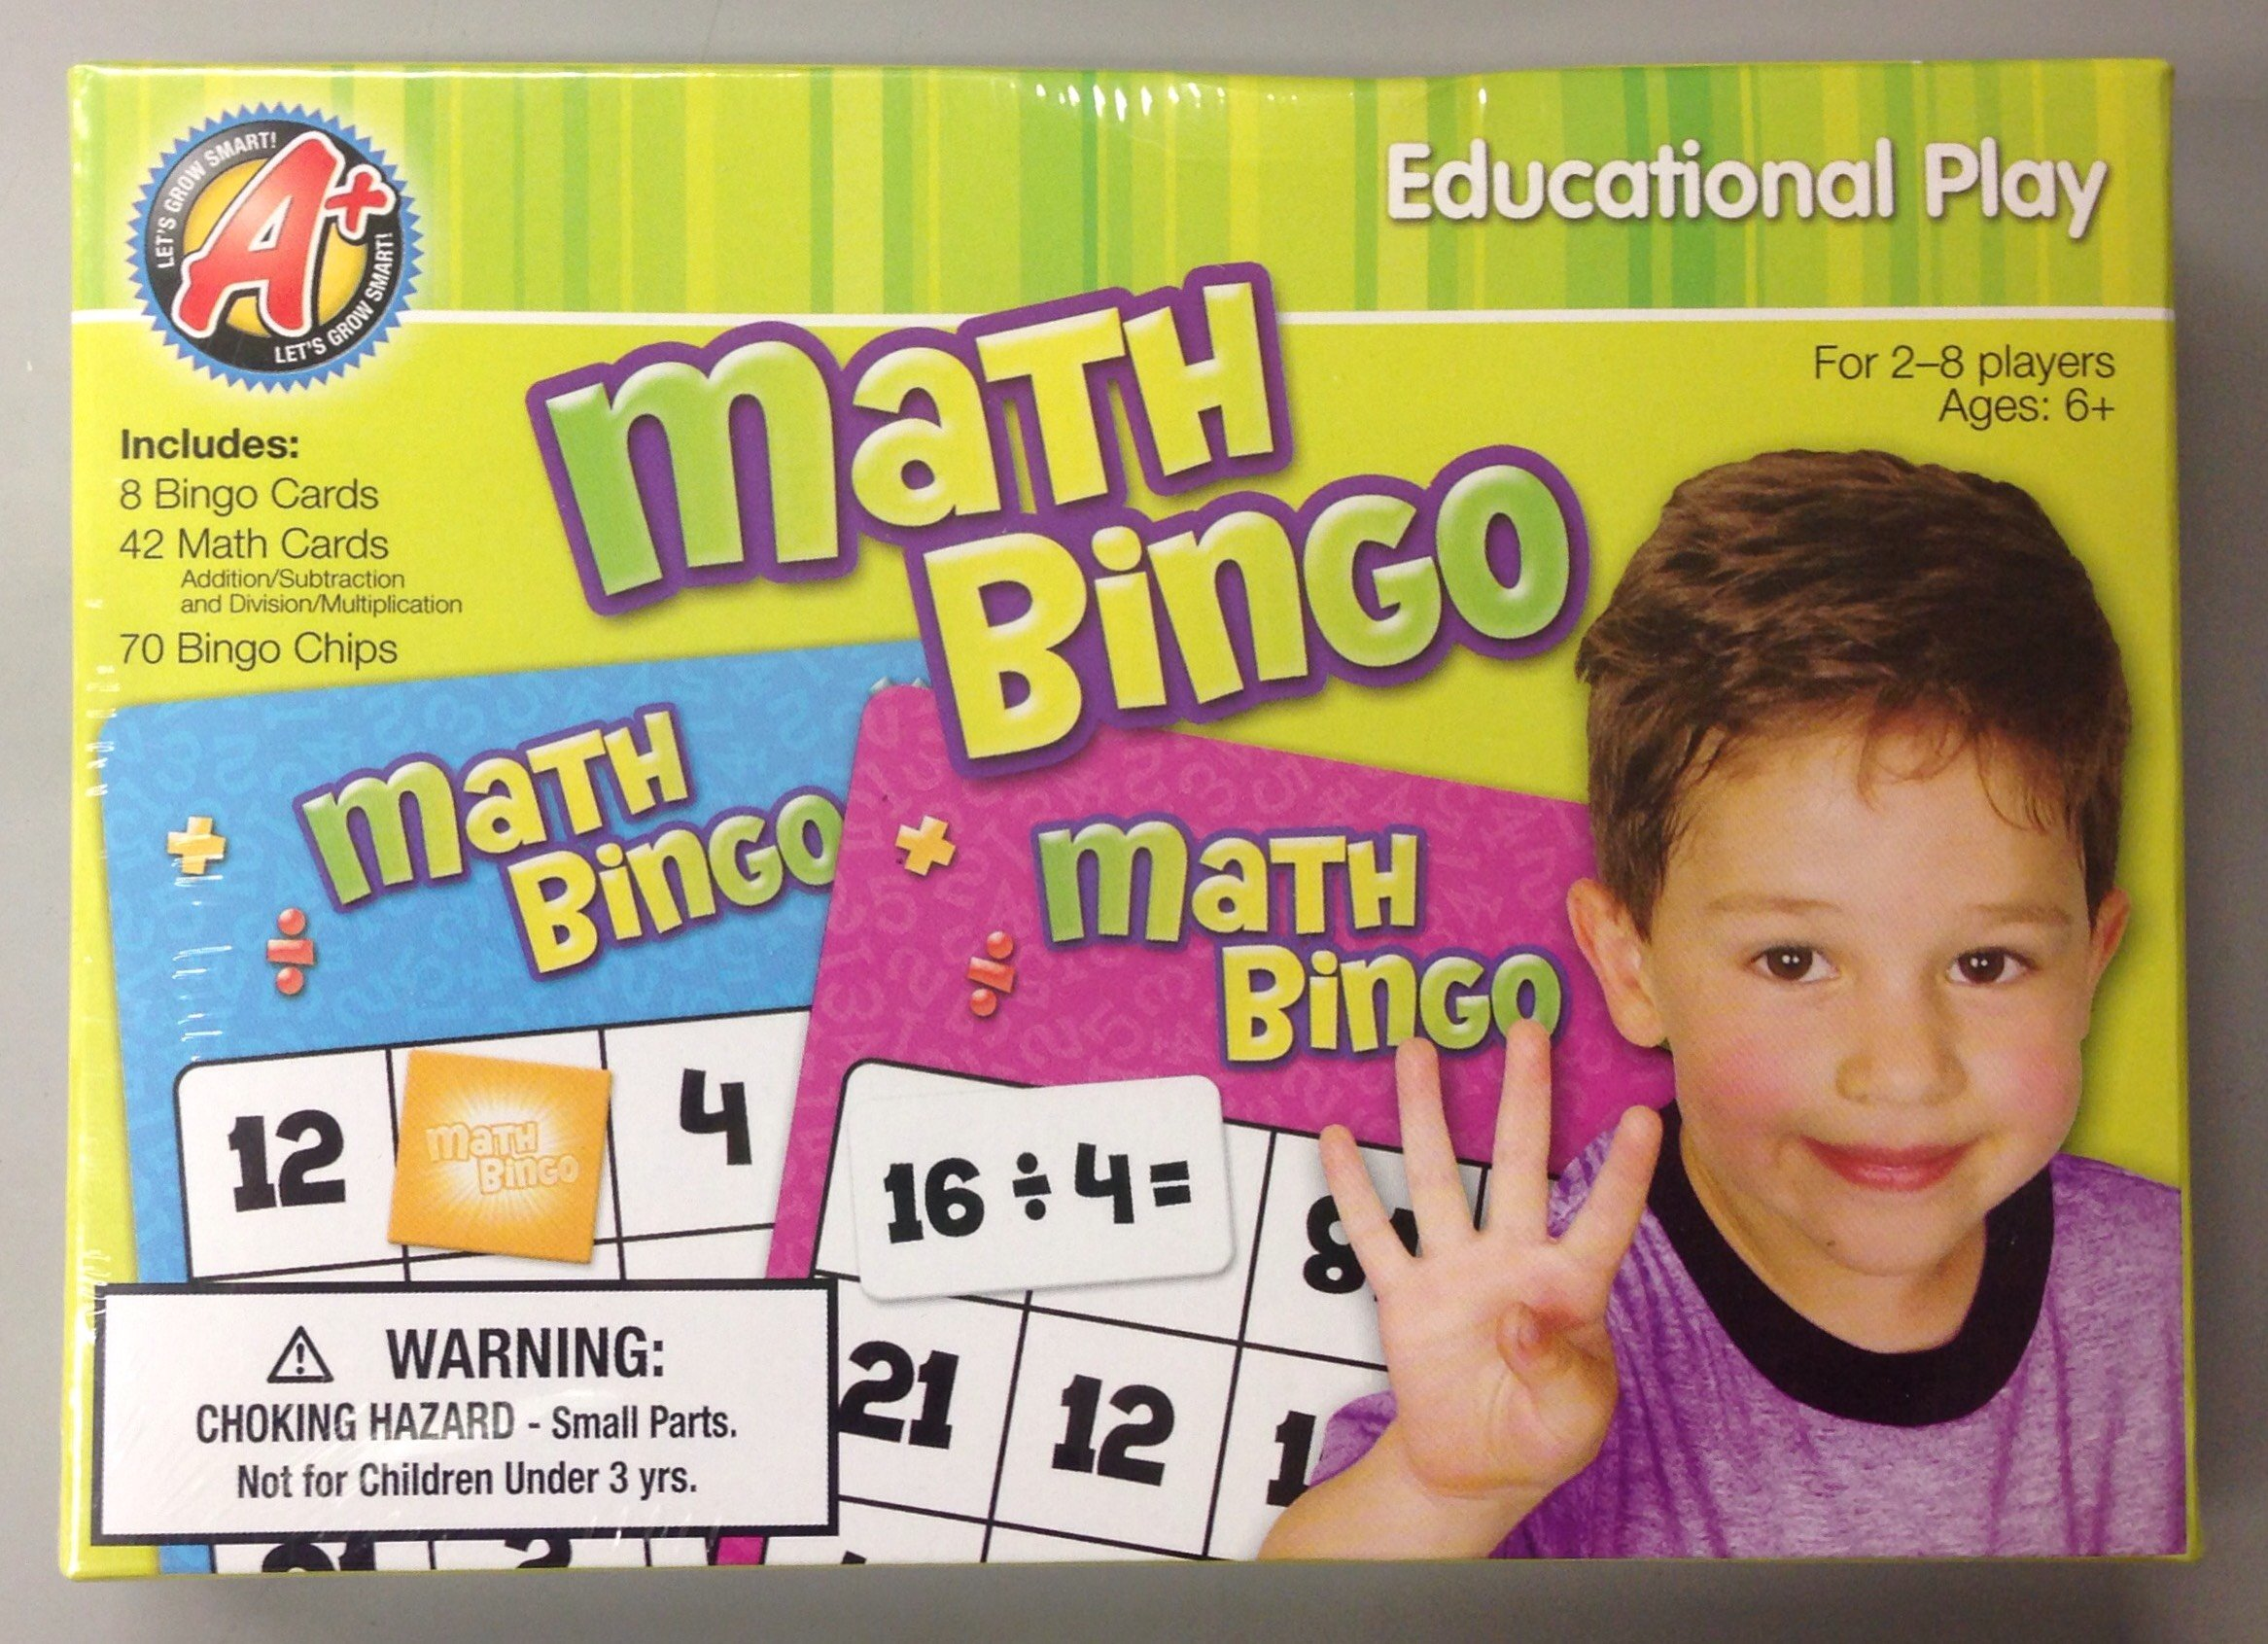 Creative Edge - Math Bingo (9781403794826) ebook